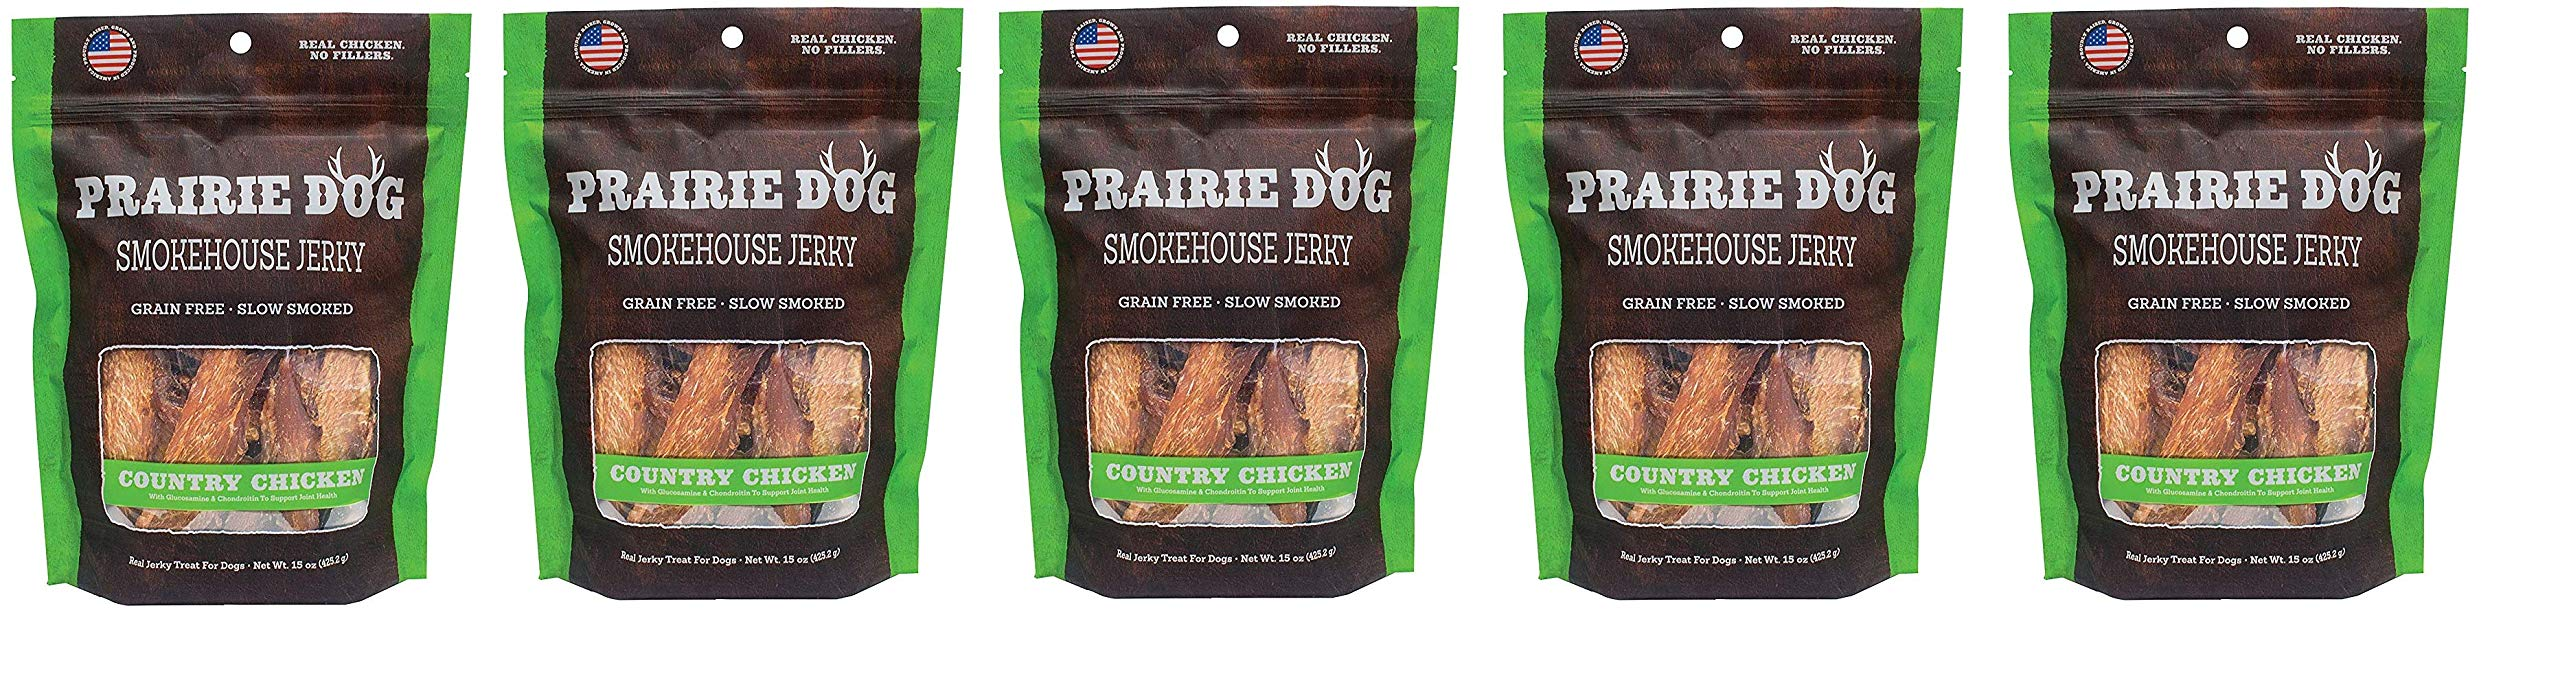 PRAIRIE DOG PET PRODUCTS Smokehouse Jerky, 15 Oz, Country Chicken (Fivе Расk)